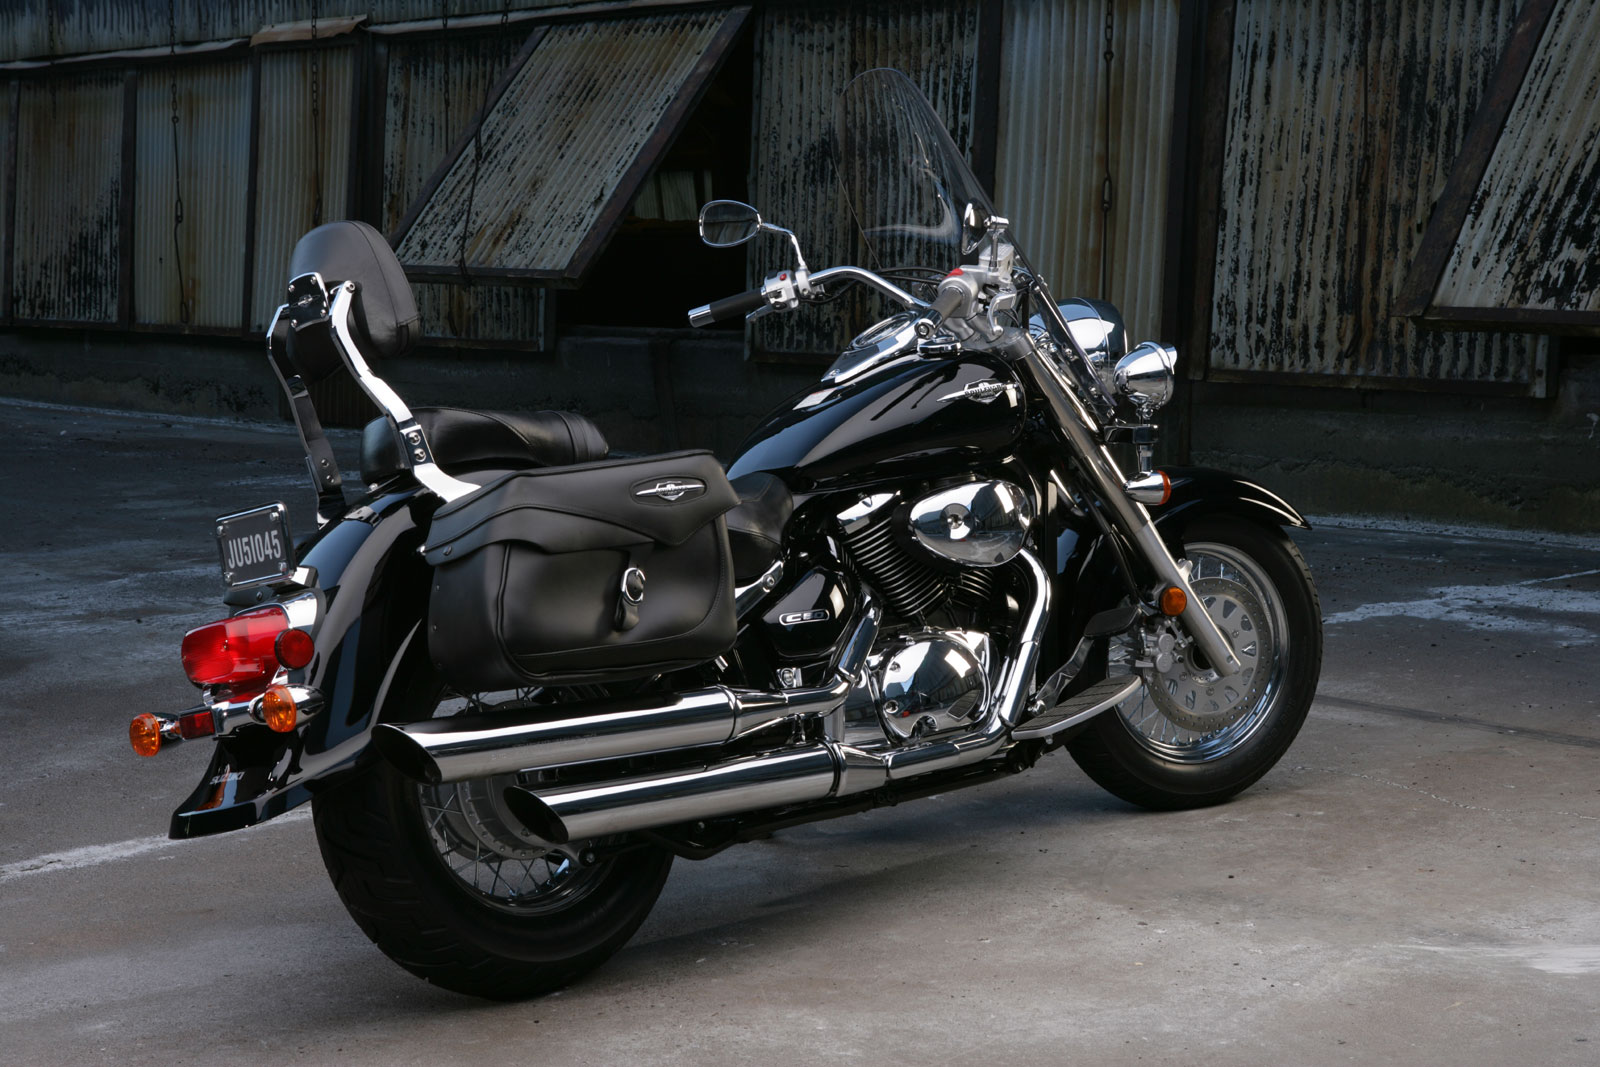 Suzuki Intruder  Rear Tire Size